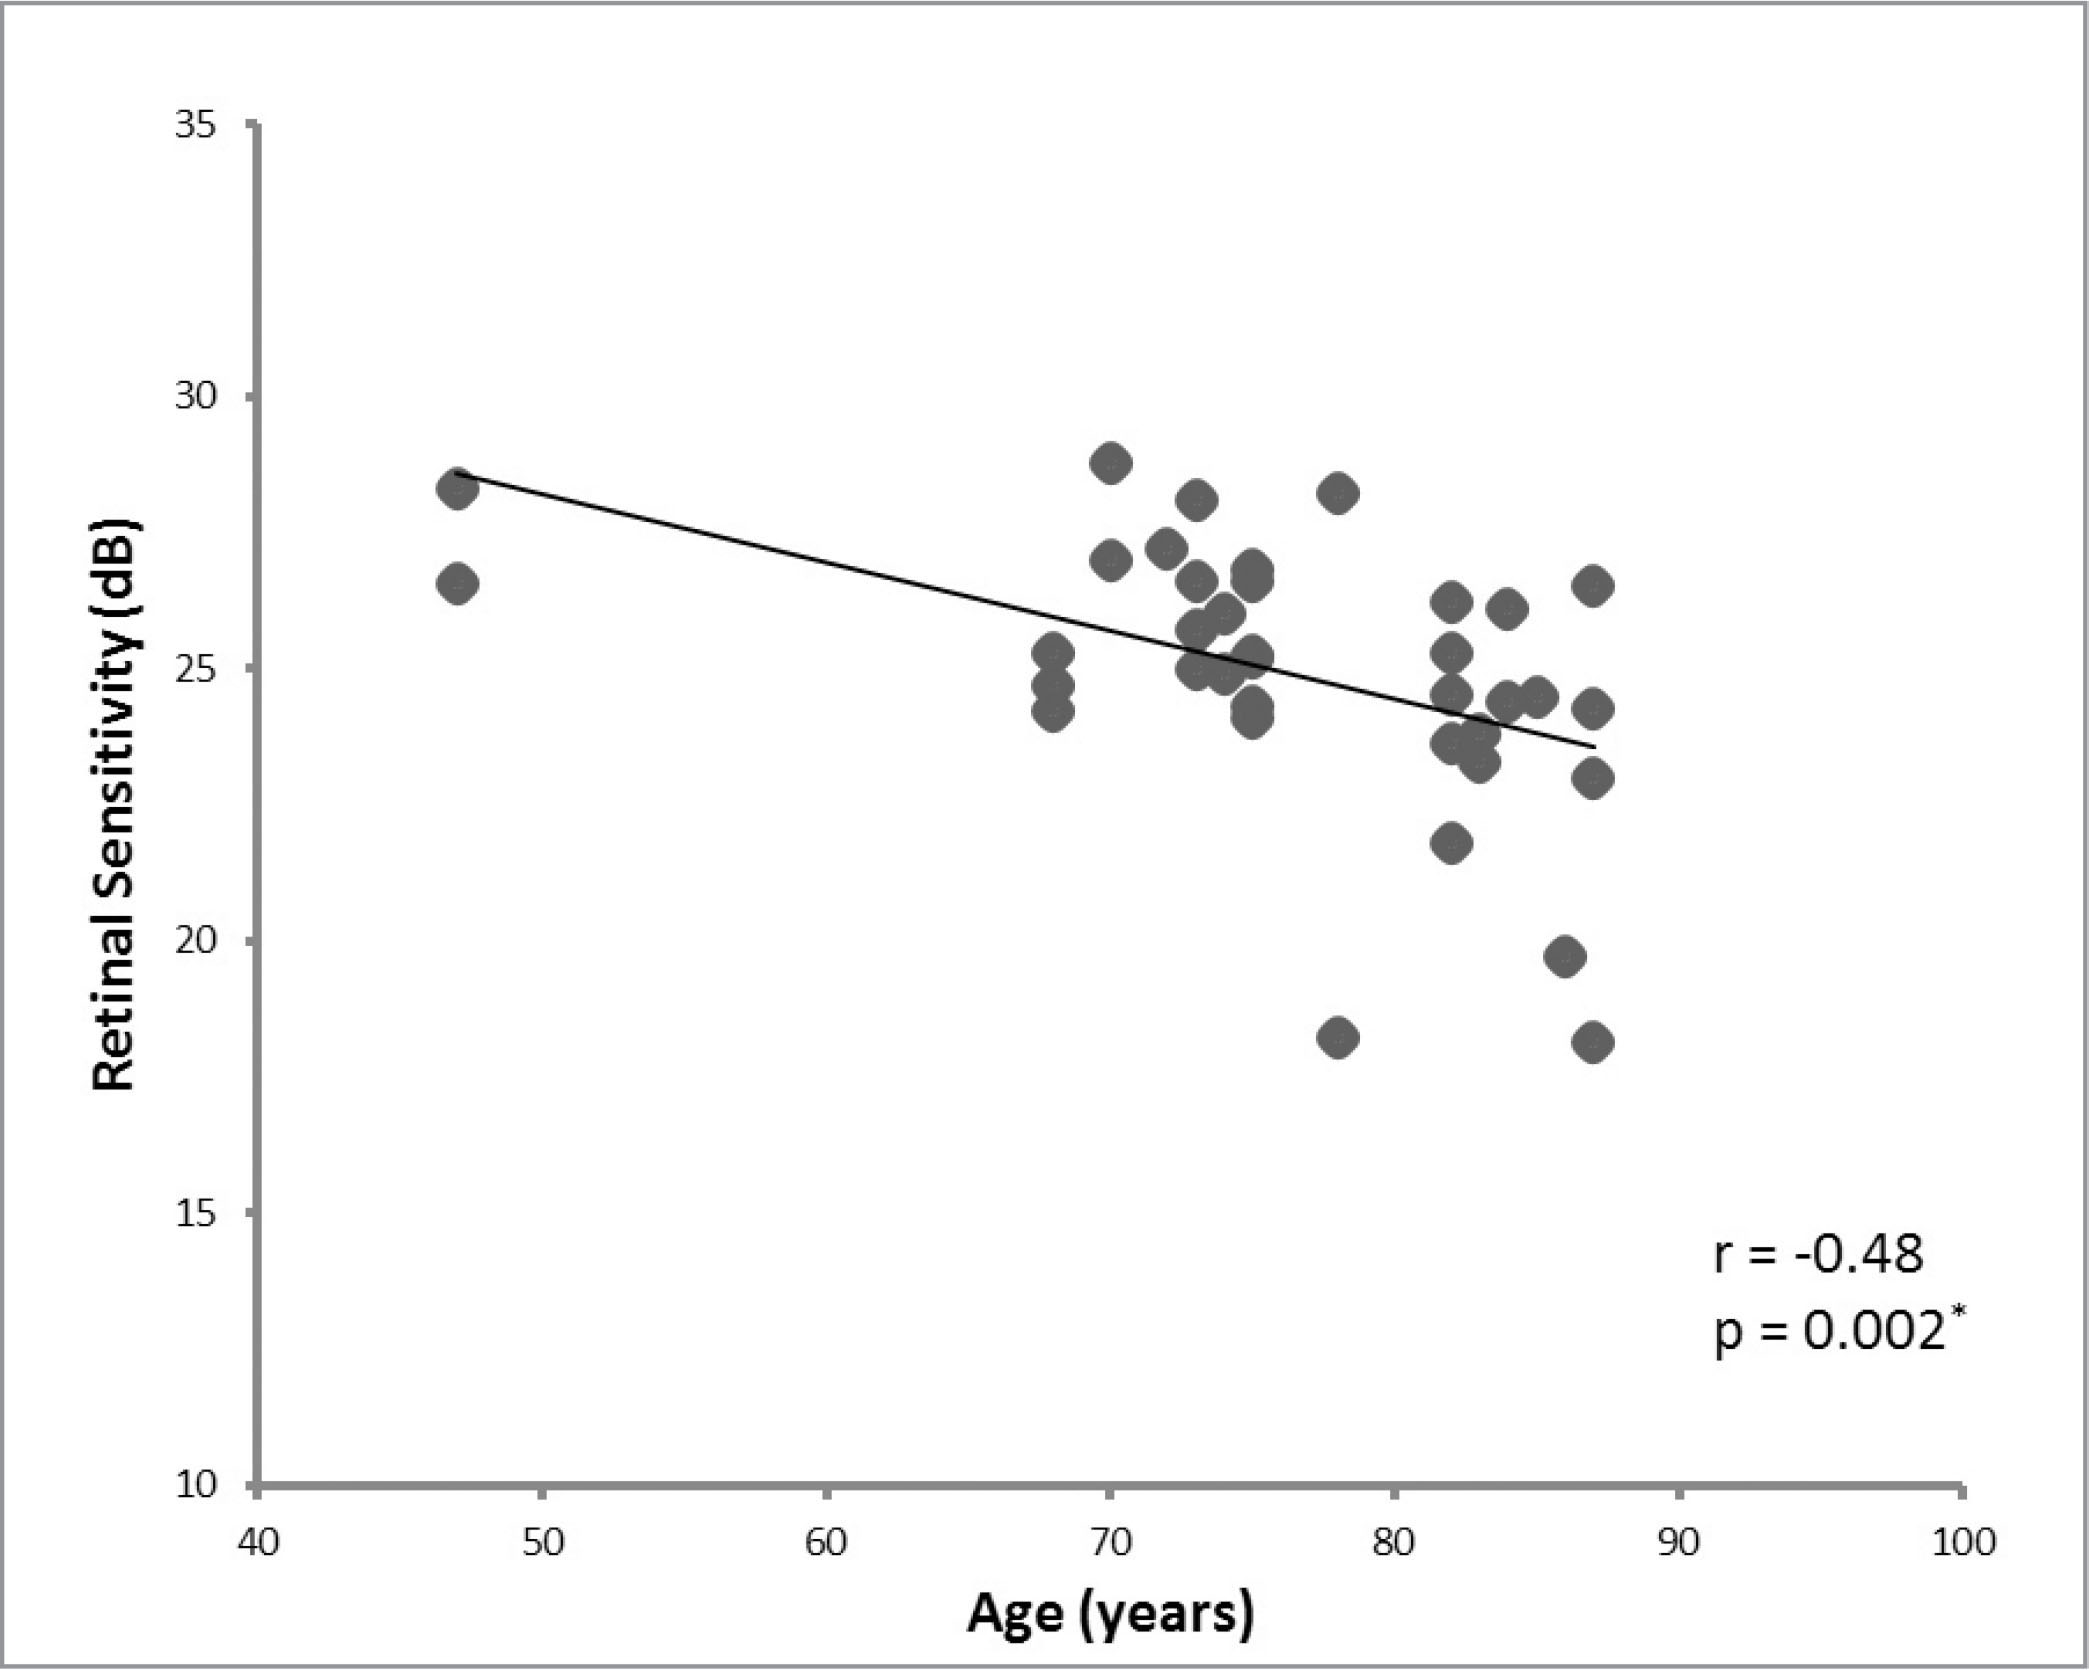 Correlation between the retinal sensitivity (in dB) and patients' age (in years).